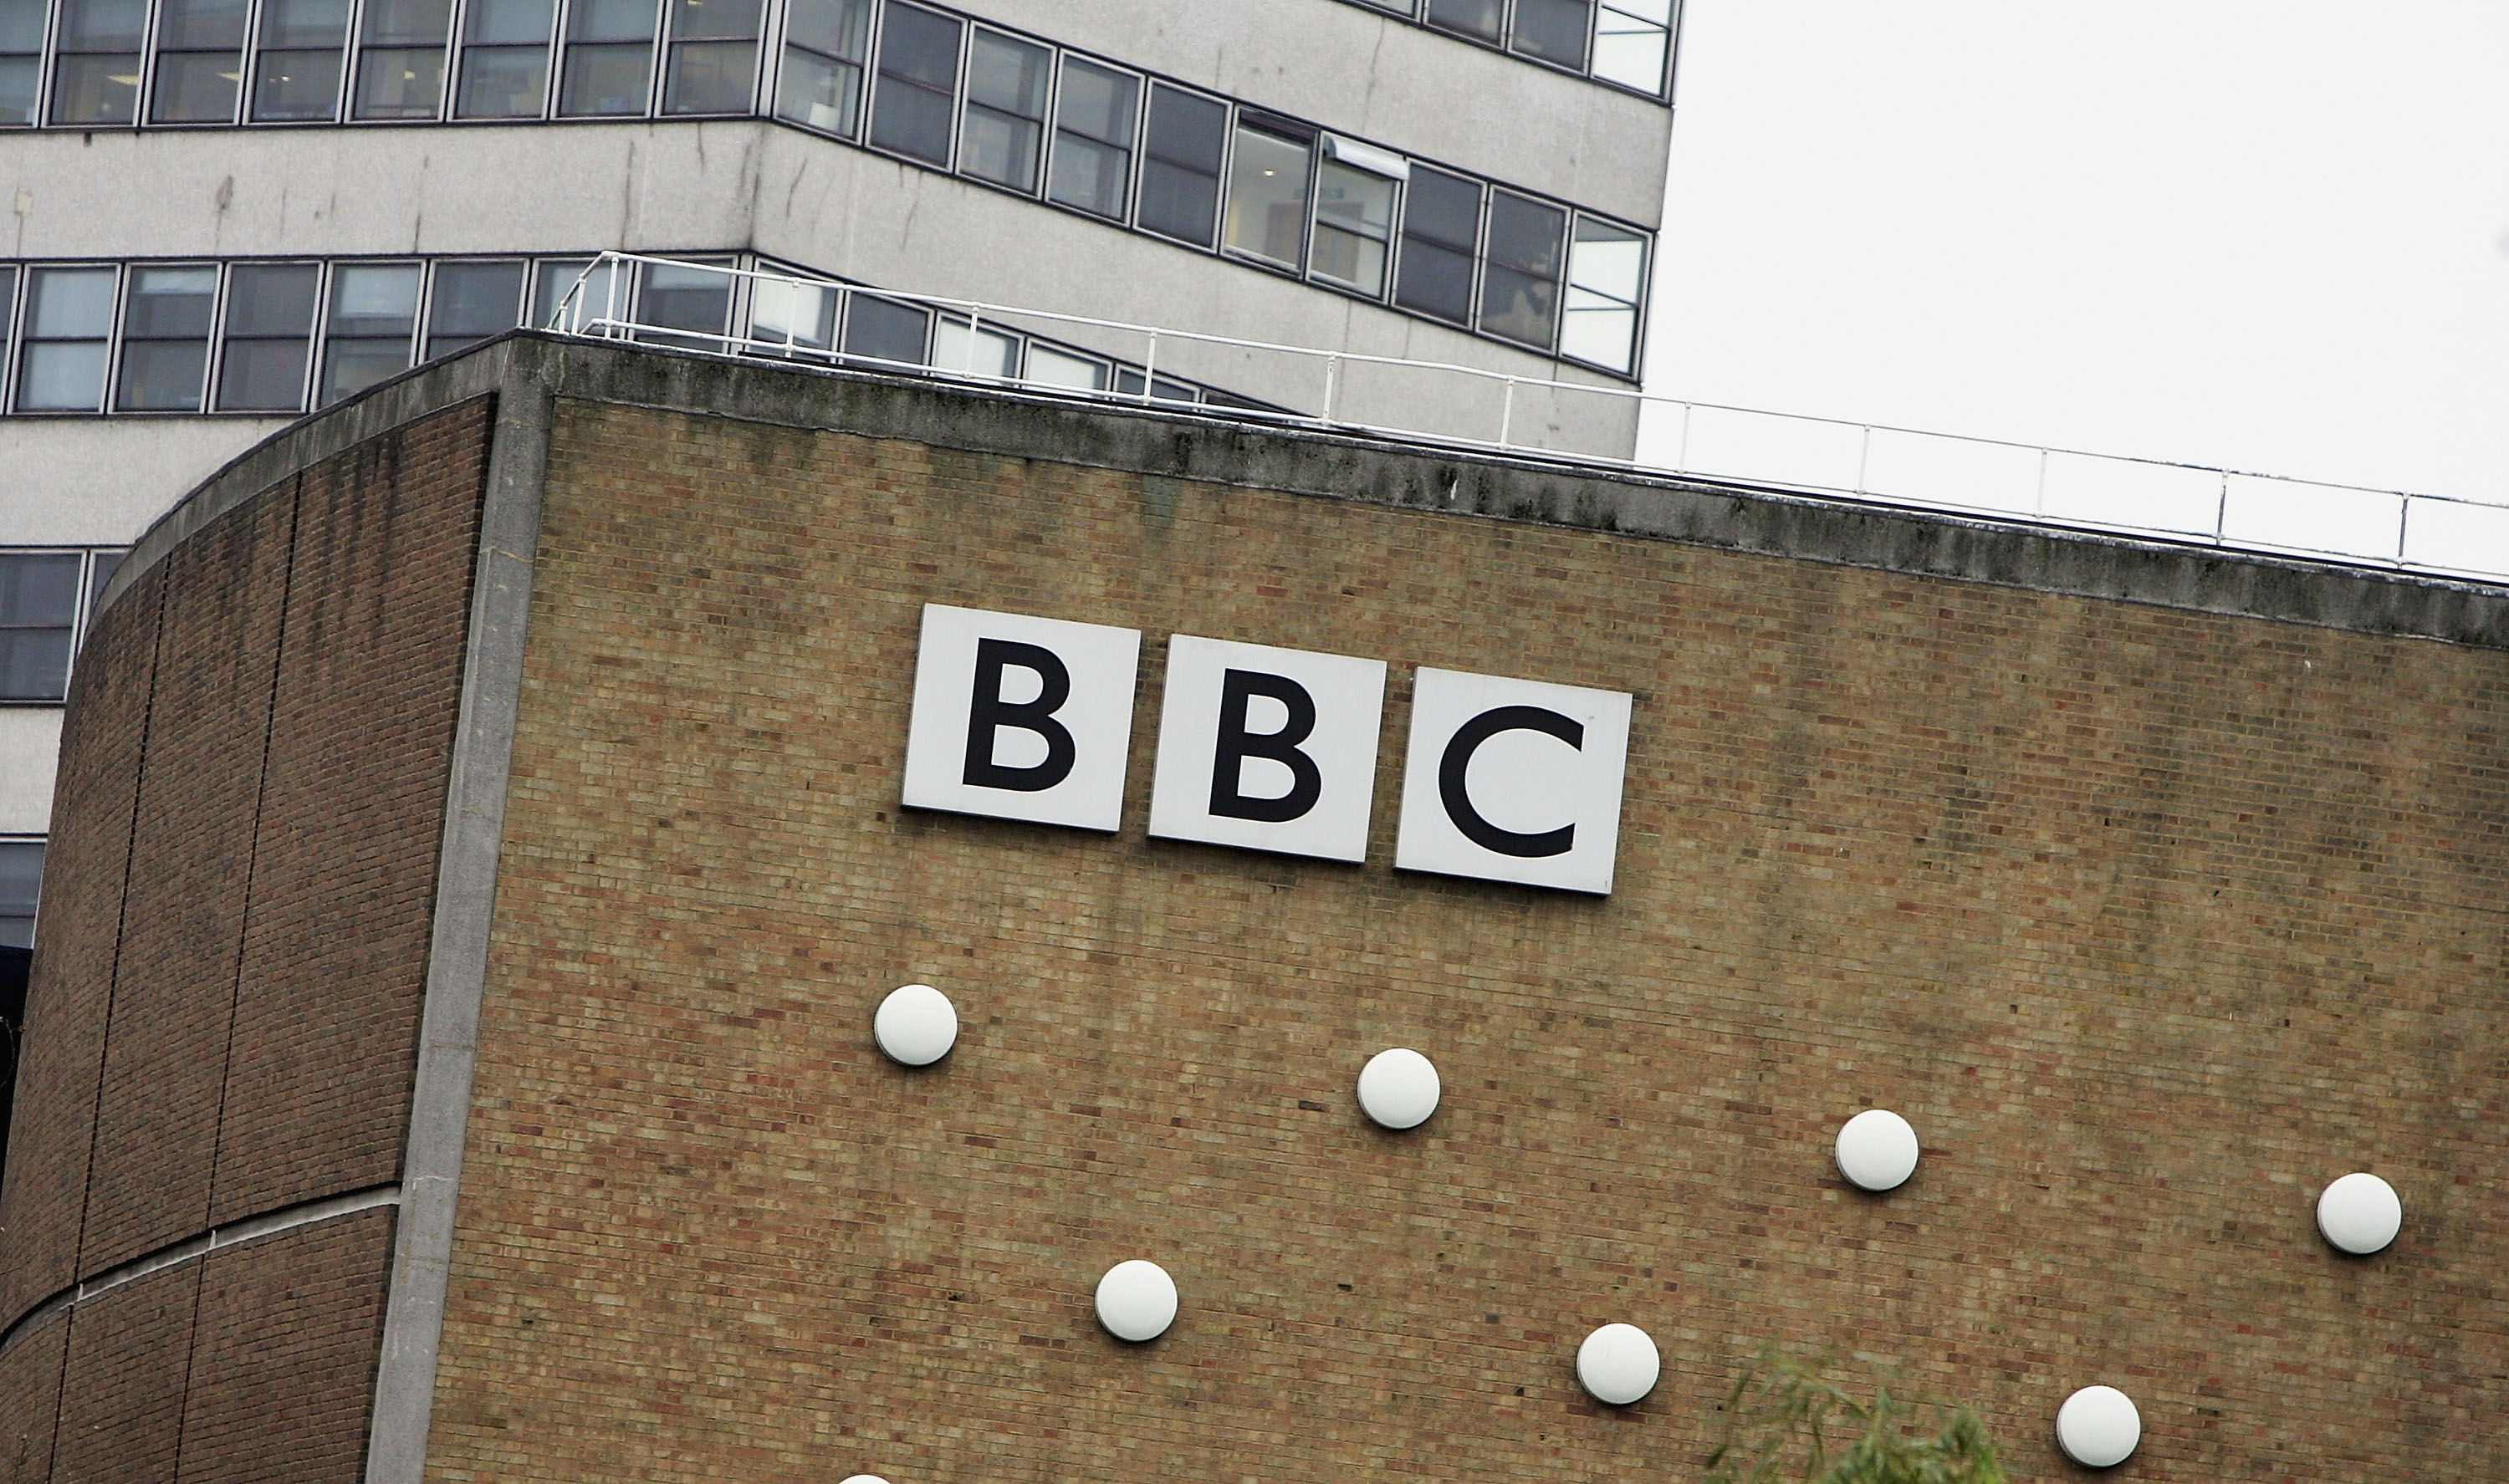 BBC Launches First 'Virtual' Radio Station to Reduce Costs